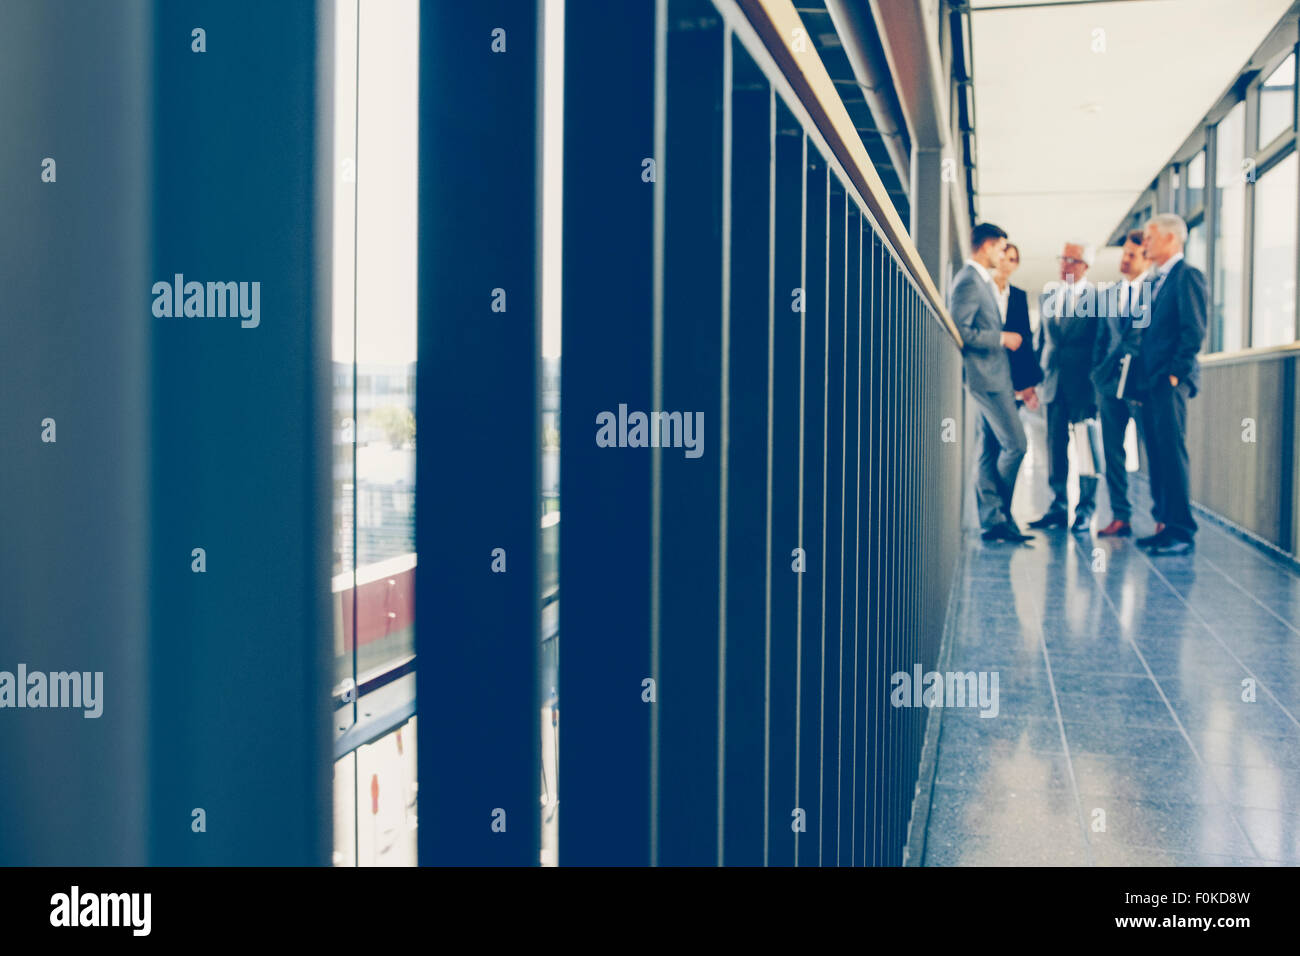 Group of business people standing on office corridor - Stock Image